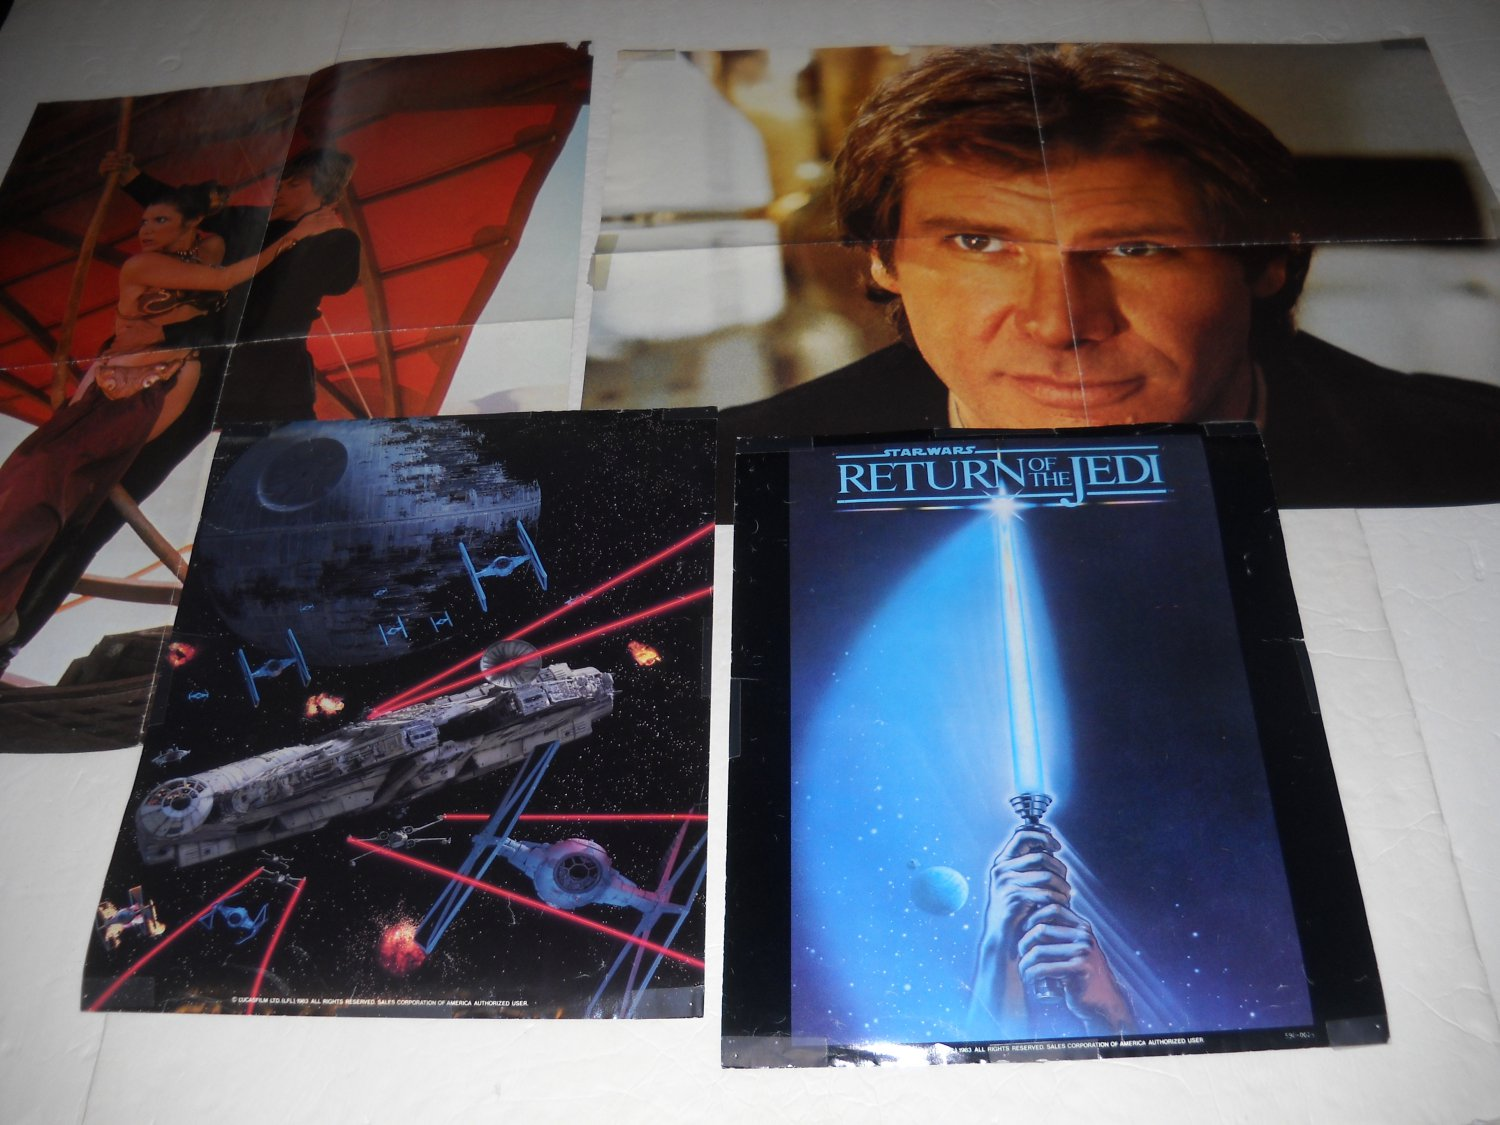 Star Wars: Return of the Jedi Posters (4)- Style A+Leia/Luke+Han Solo+Space Battle